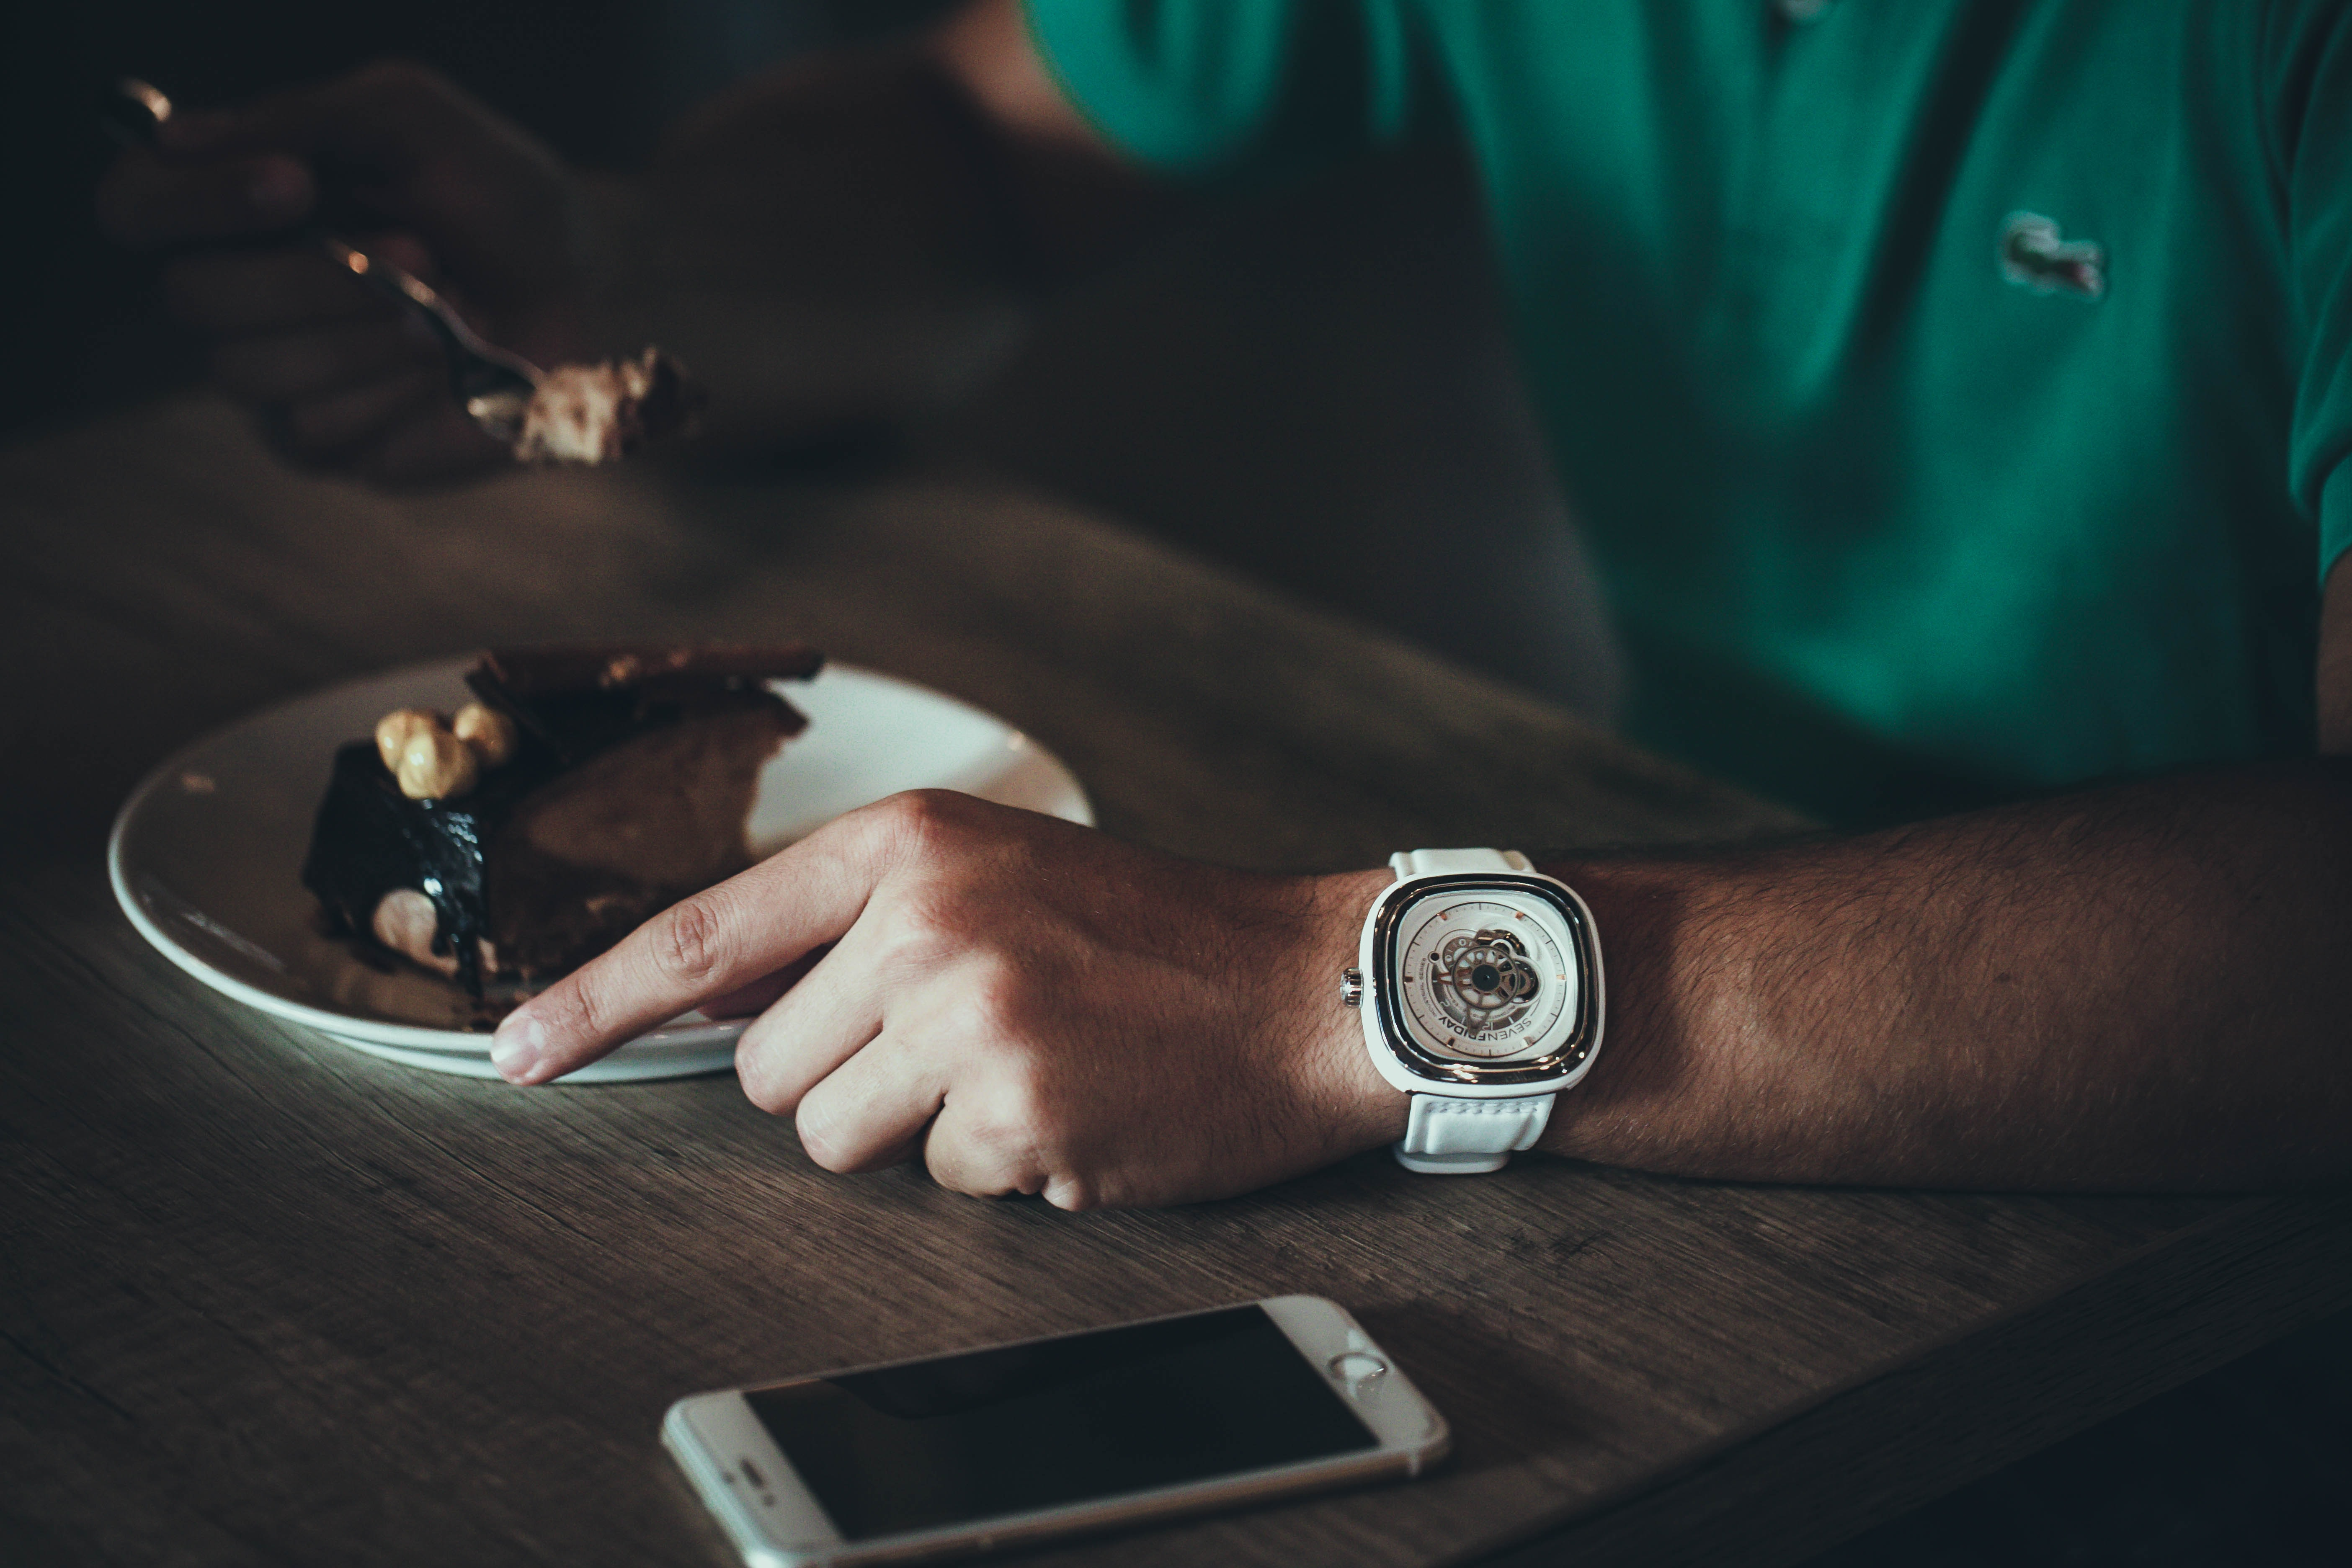 A man wearing a white watch and green shirt eating a slice of cake at a cafe while his iPhone cellphone sits nearby on the table in Switzerland